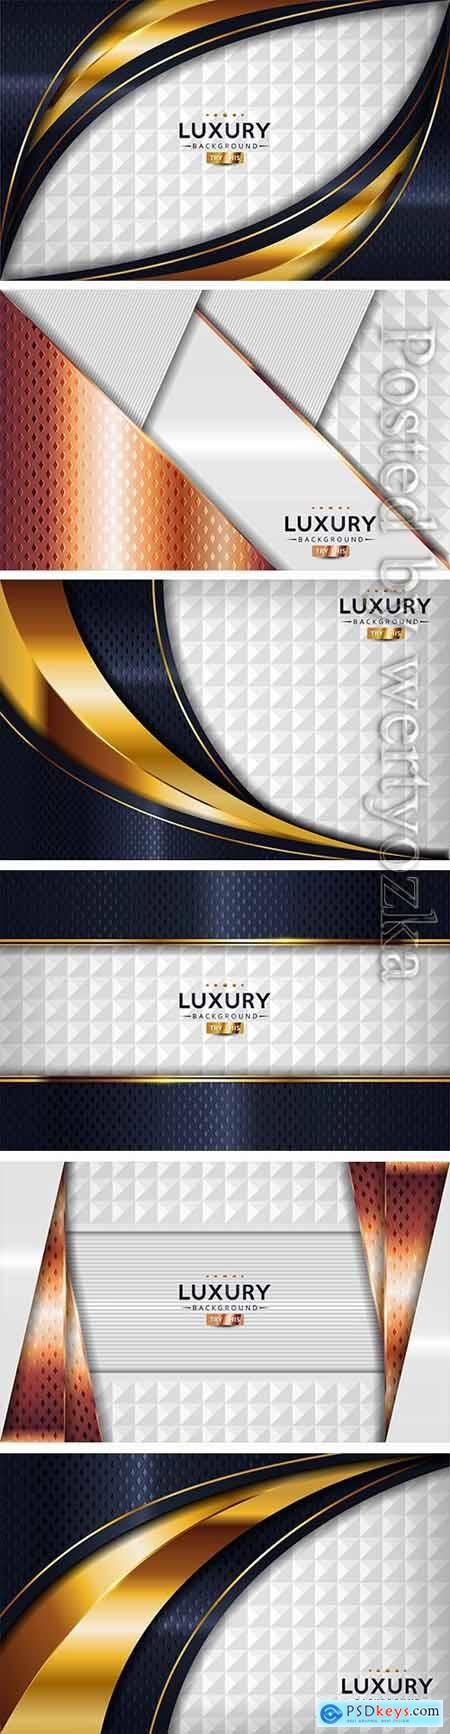 Dark navy and textured white luxury abstract vector background